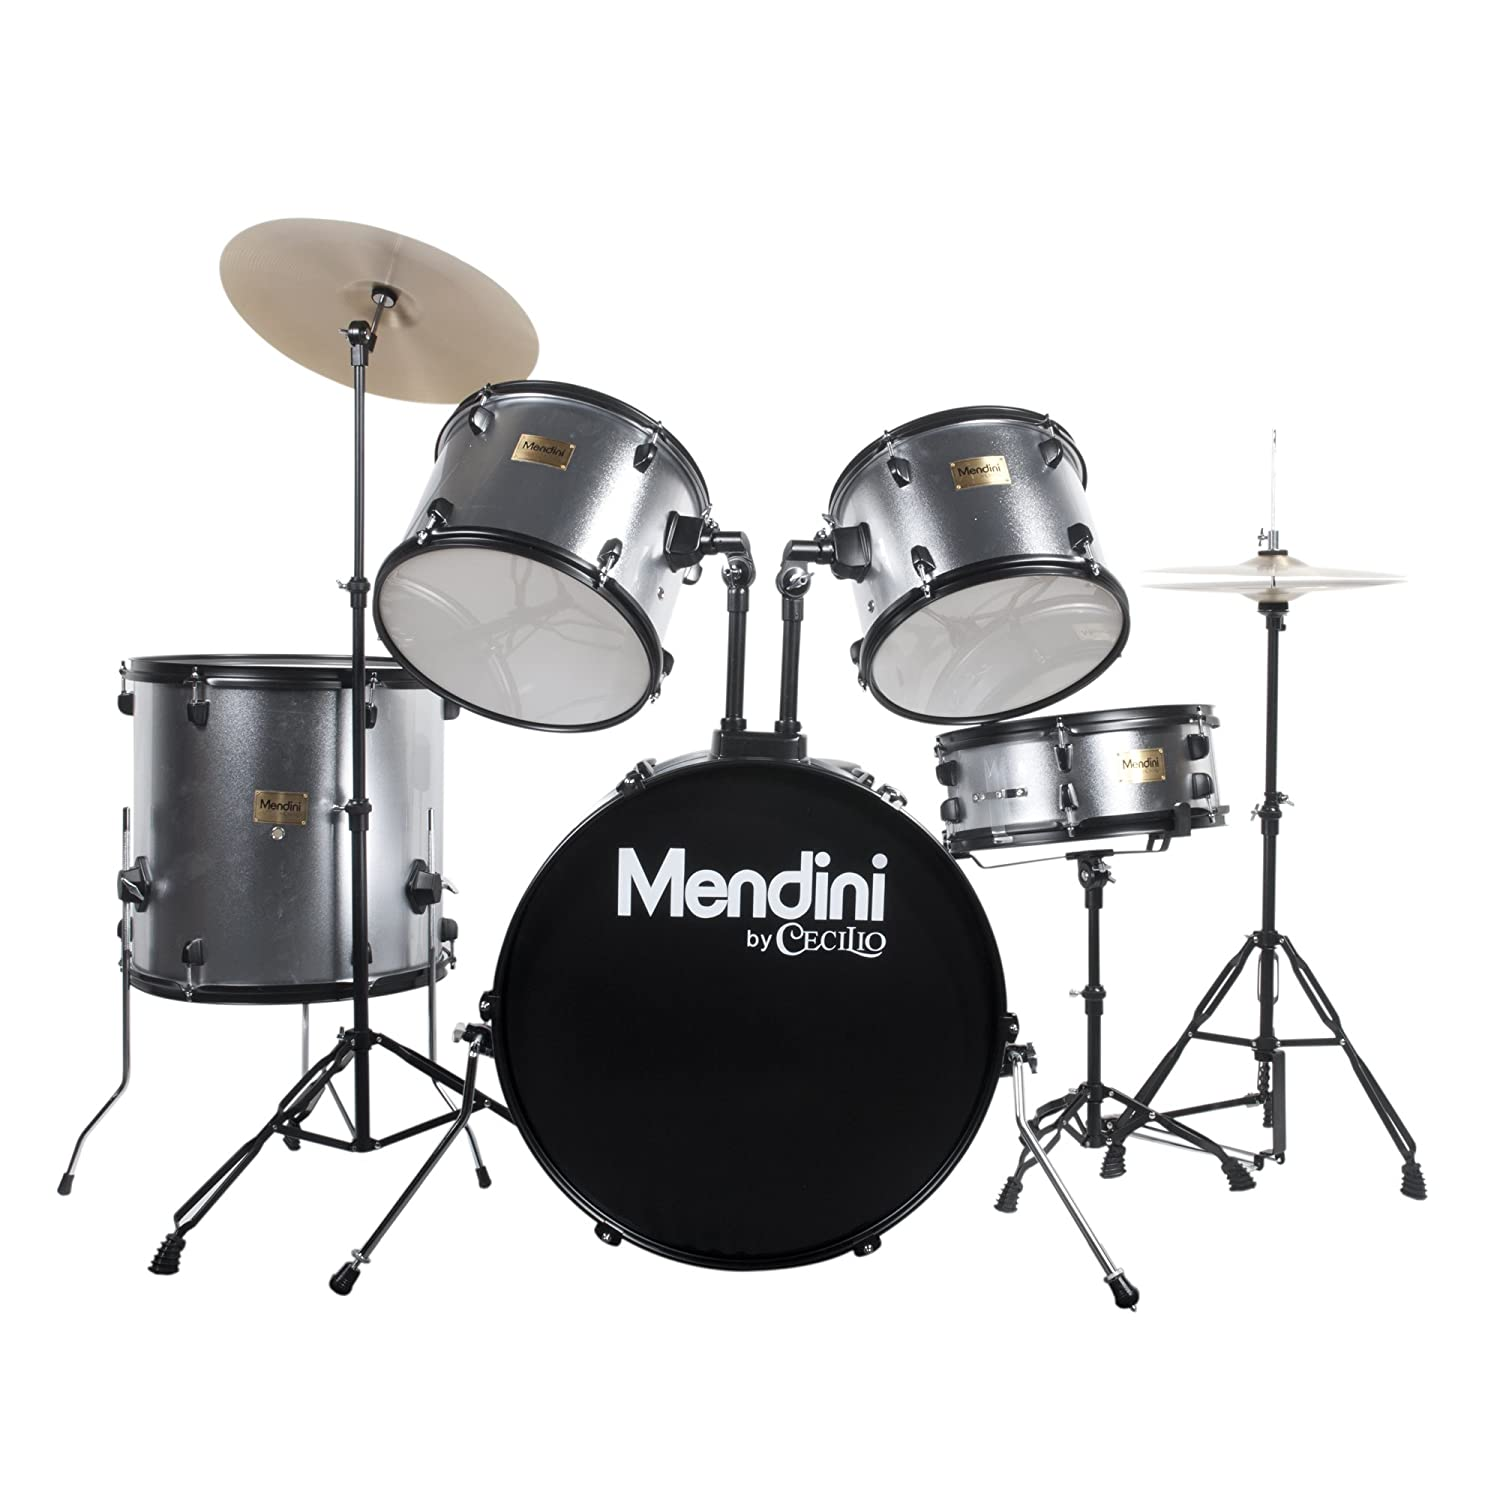 Mendini by Cecilio Complete Full Size 5-Piece Adult Drum Set with Cymbals, Pedal, Throne, and Drumsticks, Metallic Bright Red, MDS80-BR Cecilio Musical Instruments